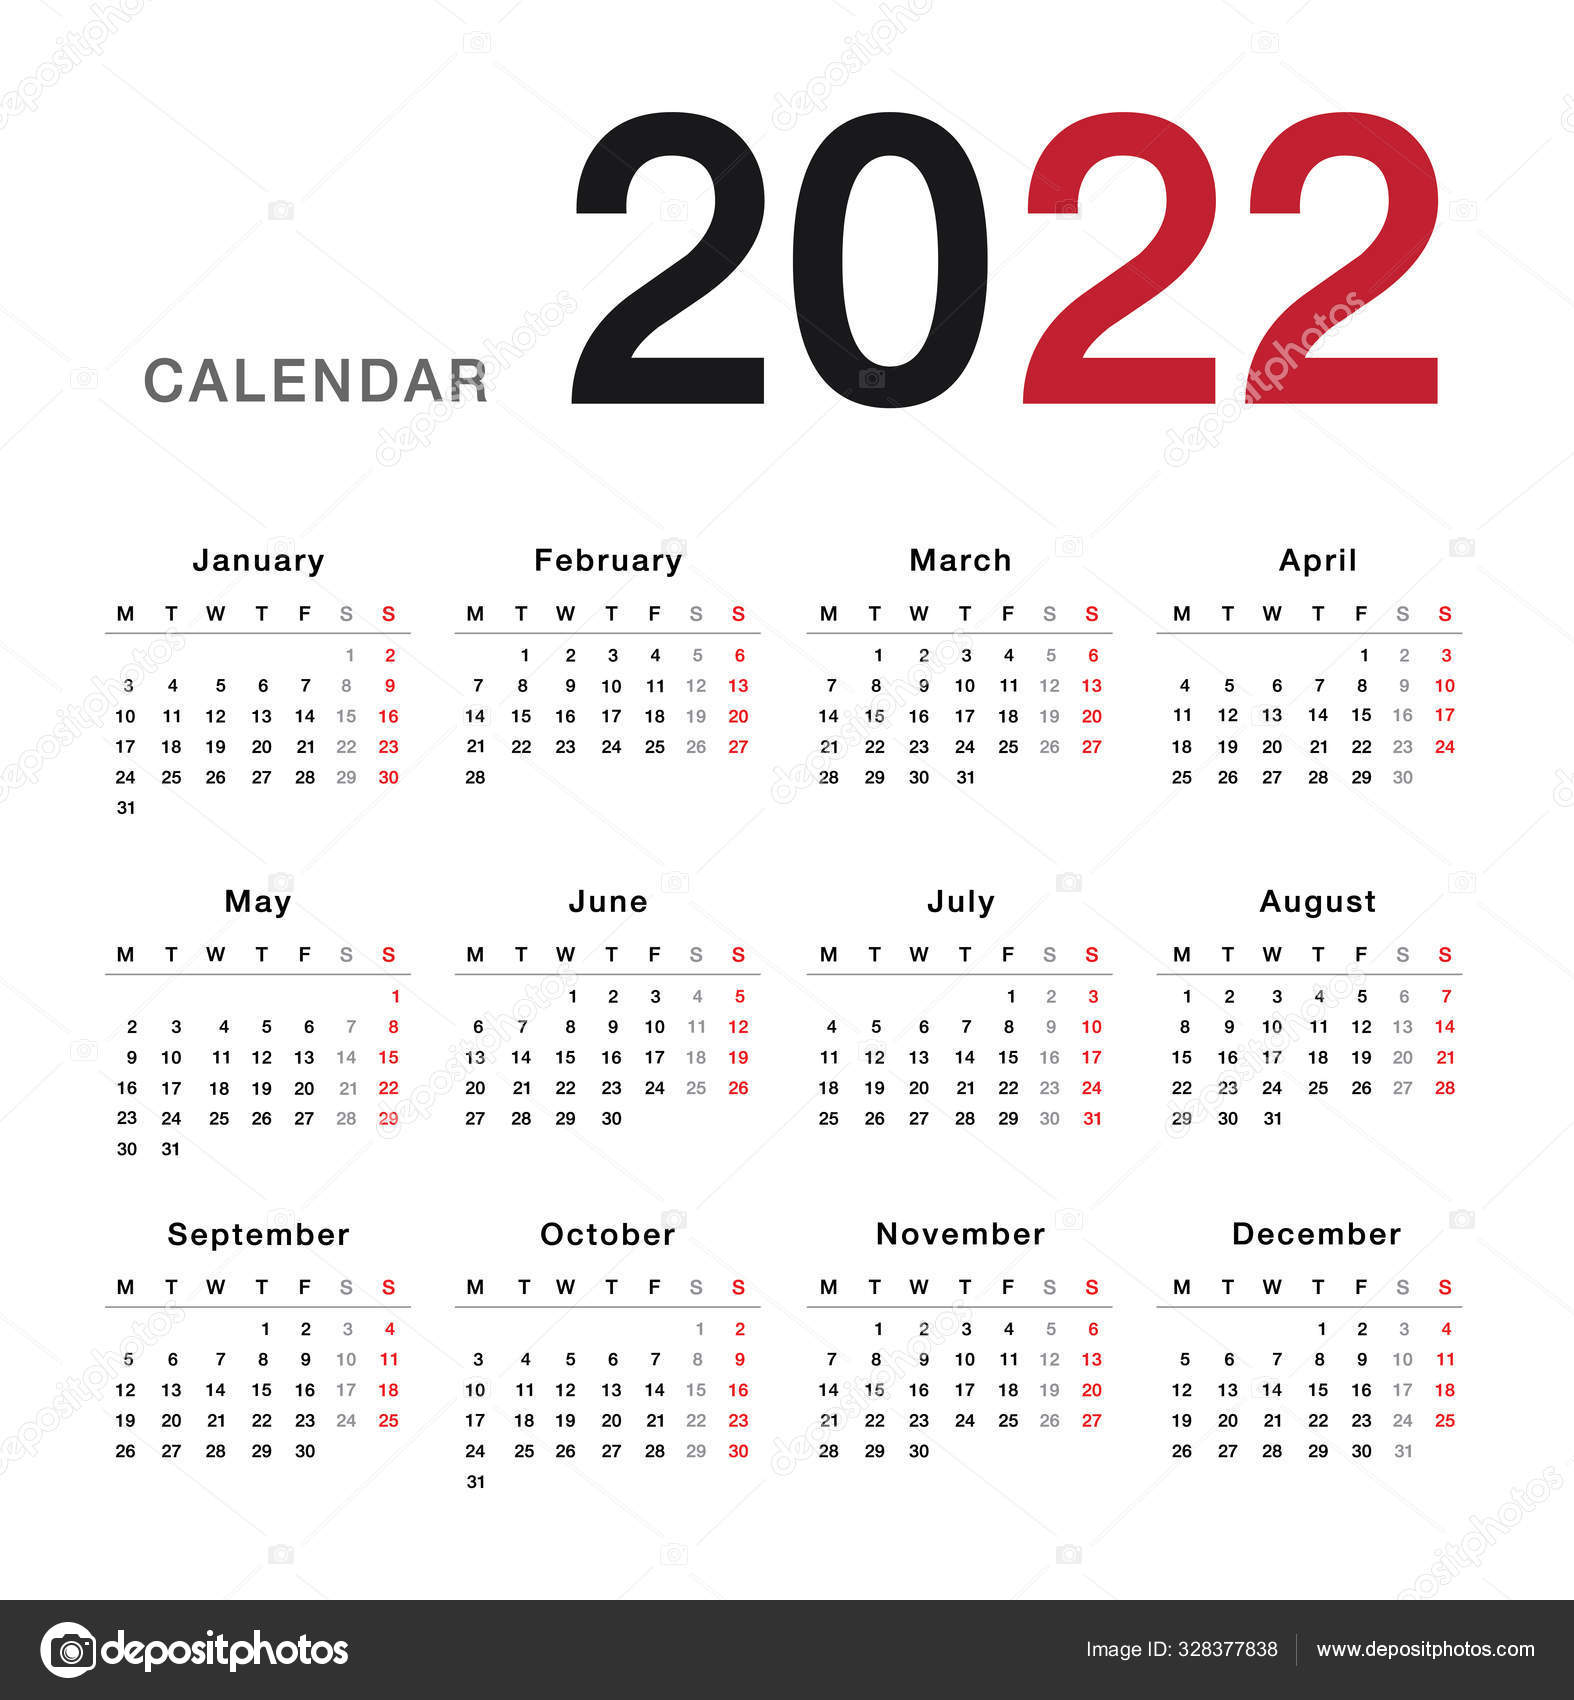 Utk Spring 2022 Calendar.Colorful Year 2022 Calendar Horizontal Vector Design Template Simple Clean Vector Image By C Kckate16 Gmail Com Vector Stock 328377838